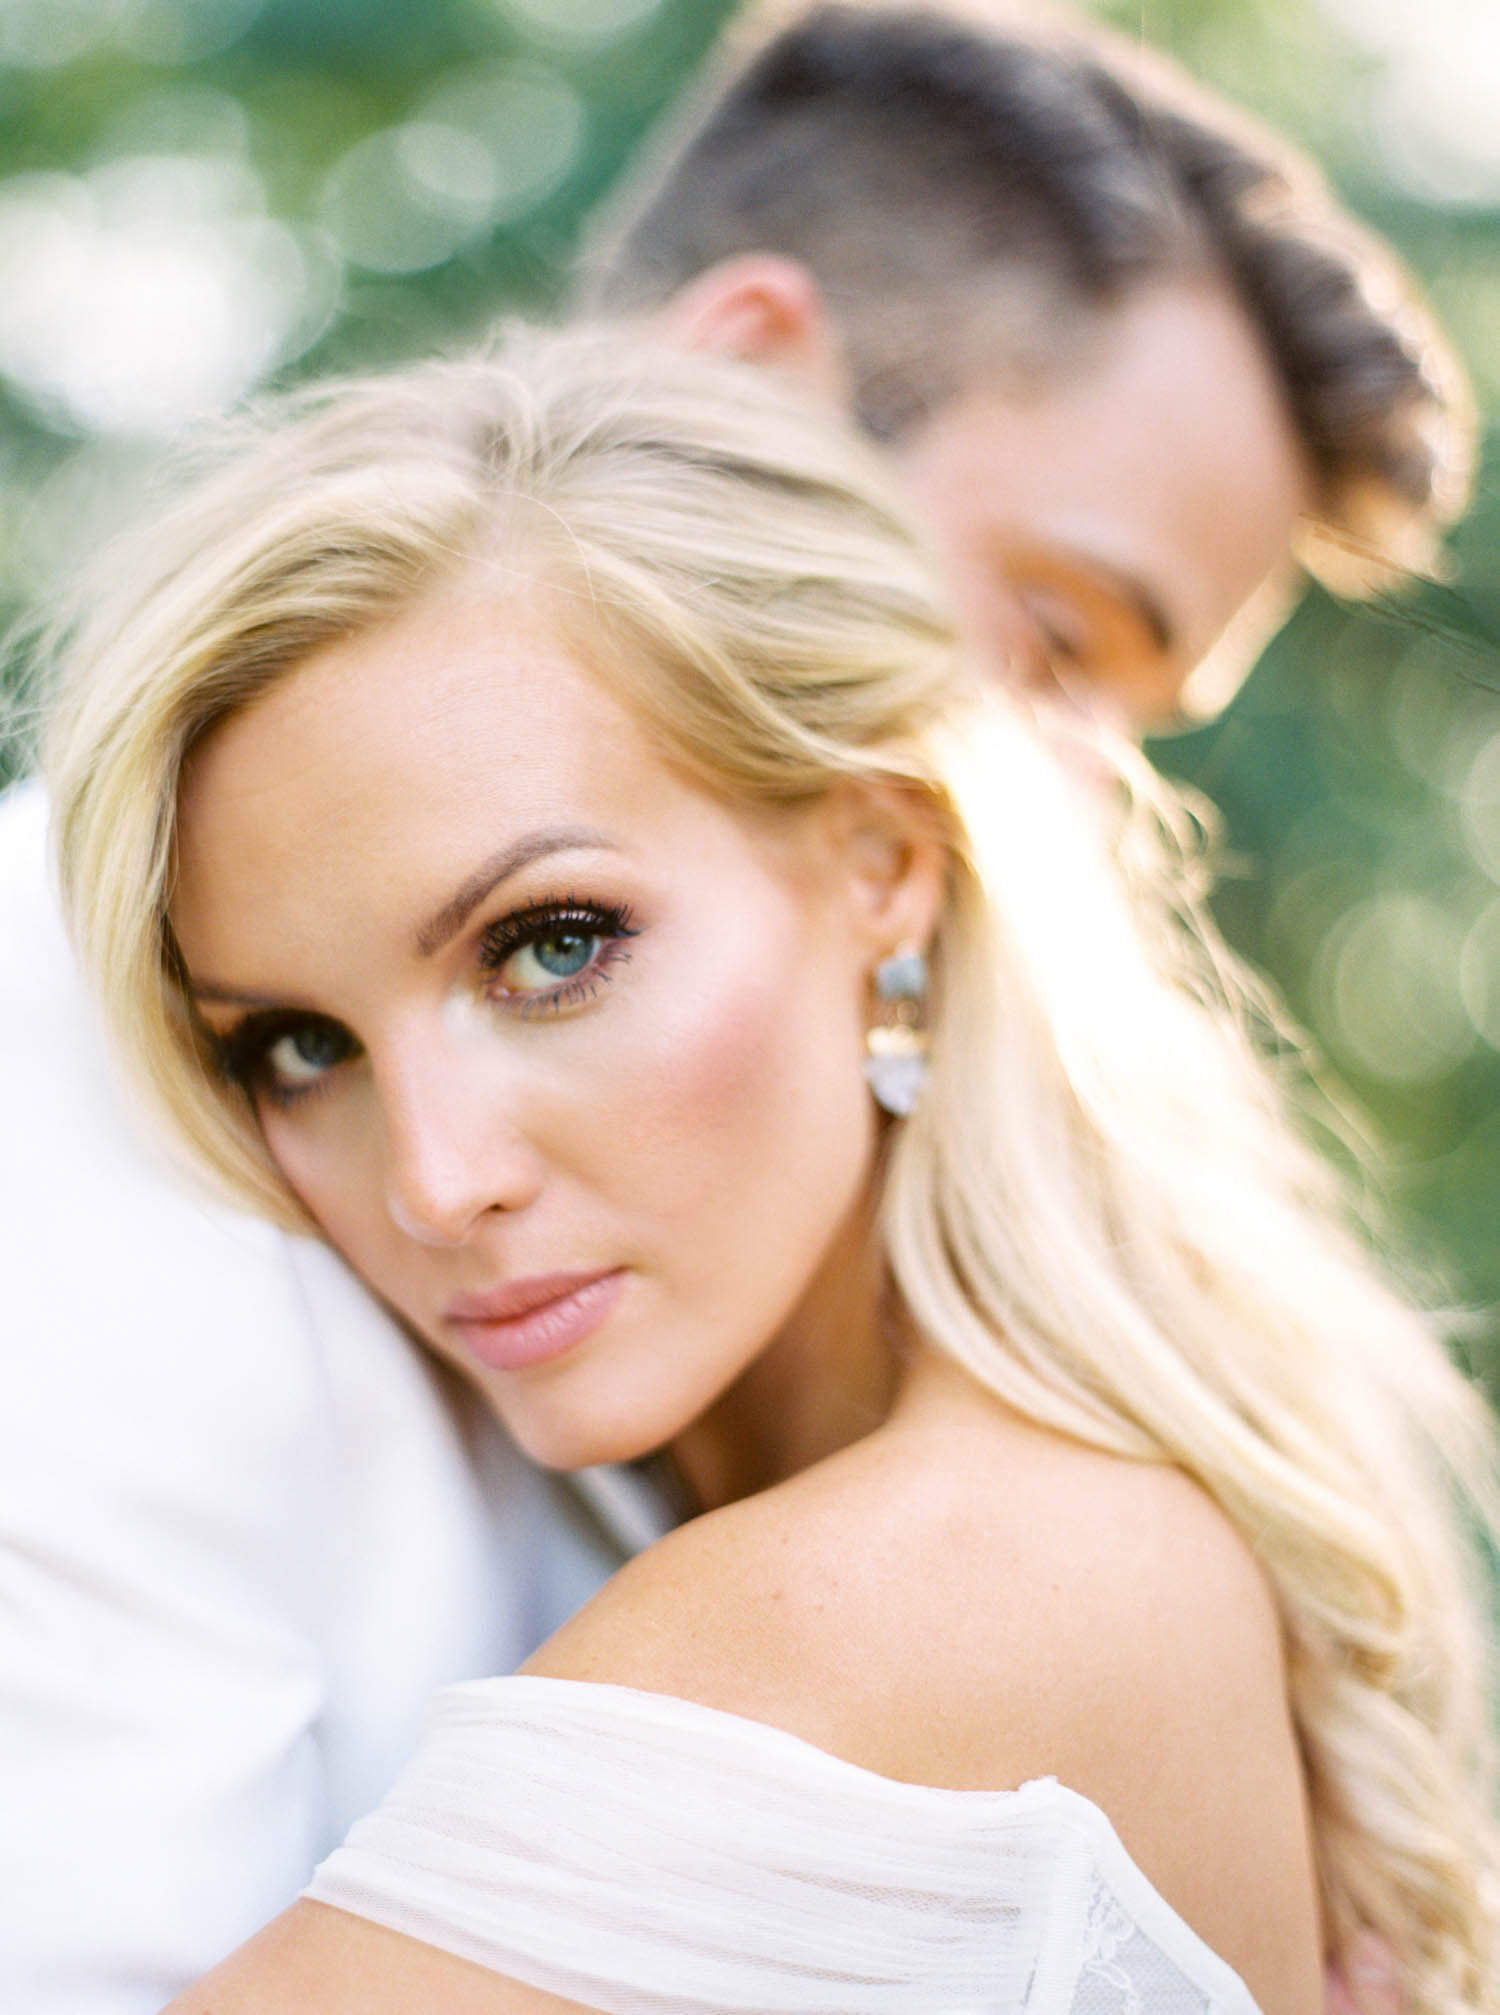 lake charles la wedding photographer